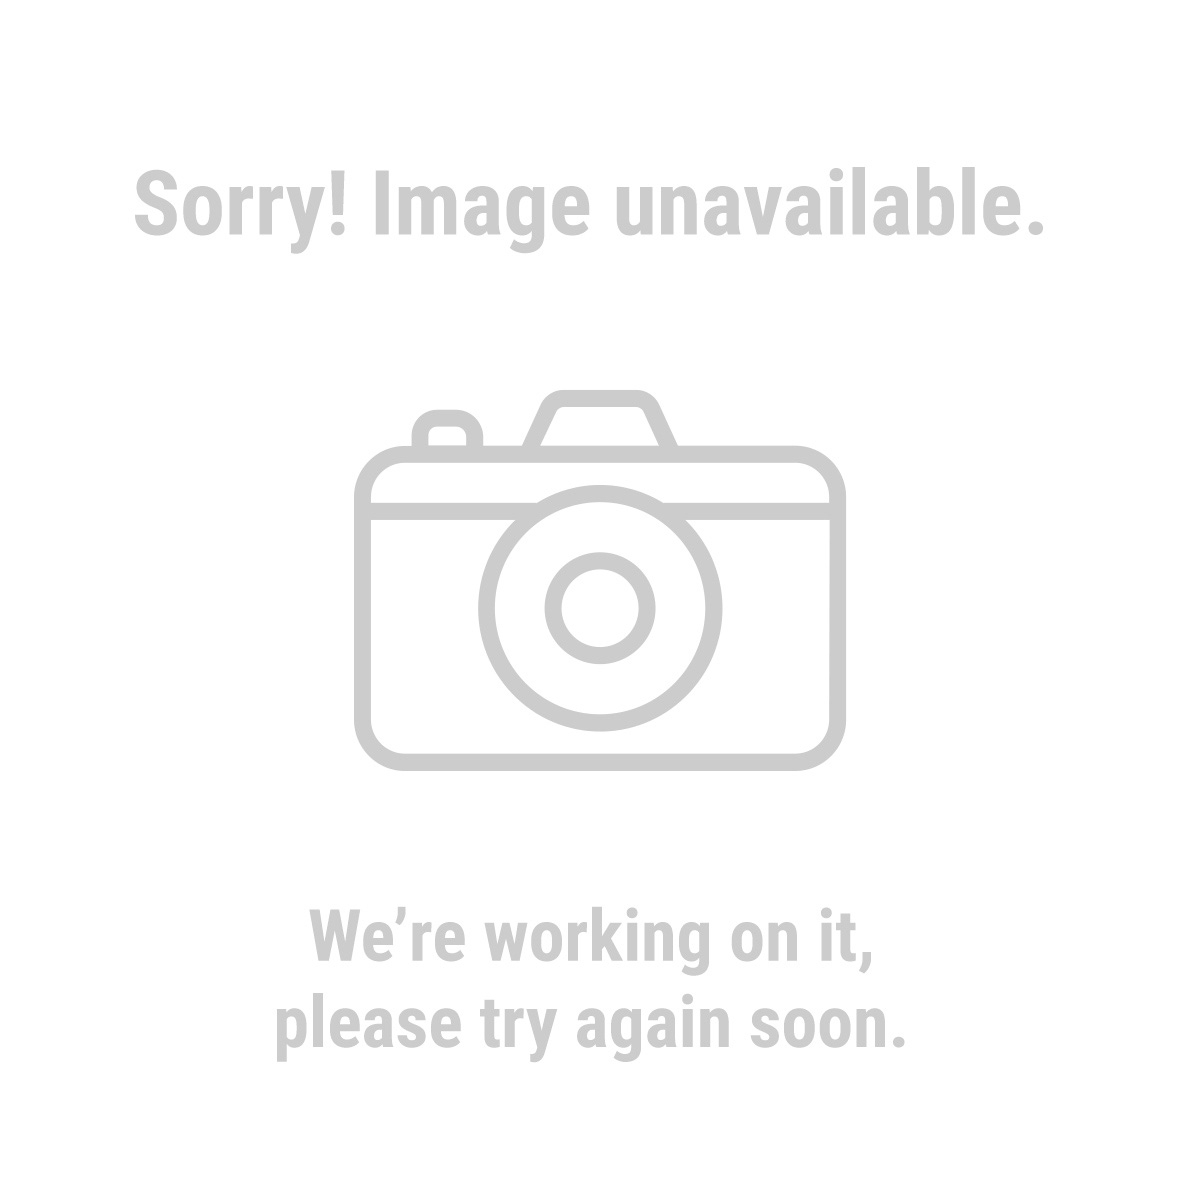 Haul-Master 69897 1720 lbs. lb. Capacity Super Duty Utility Trailer, 48 in.  x 96 in.